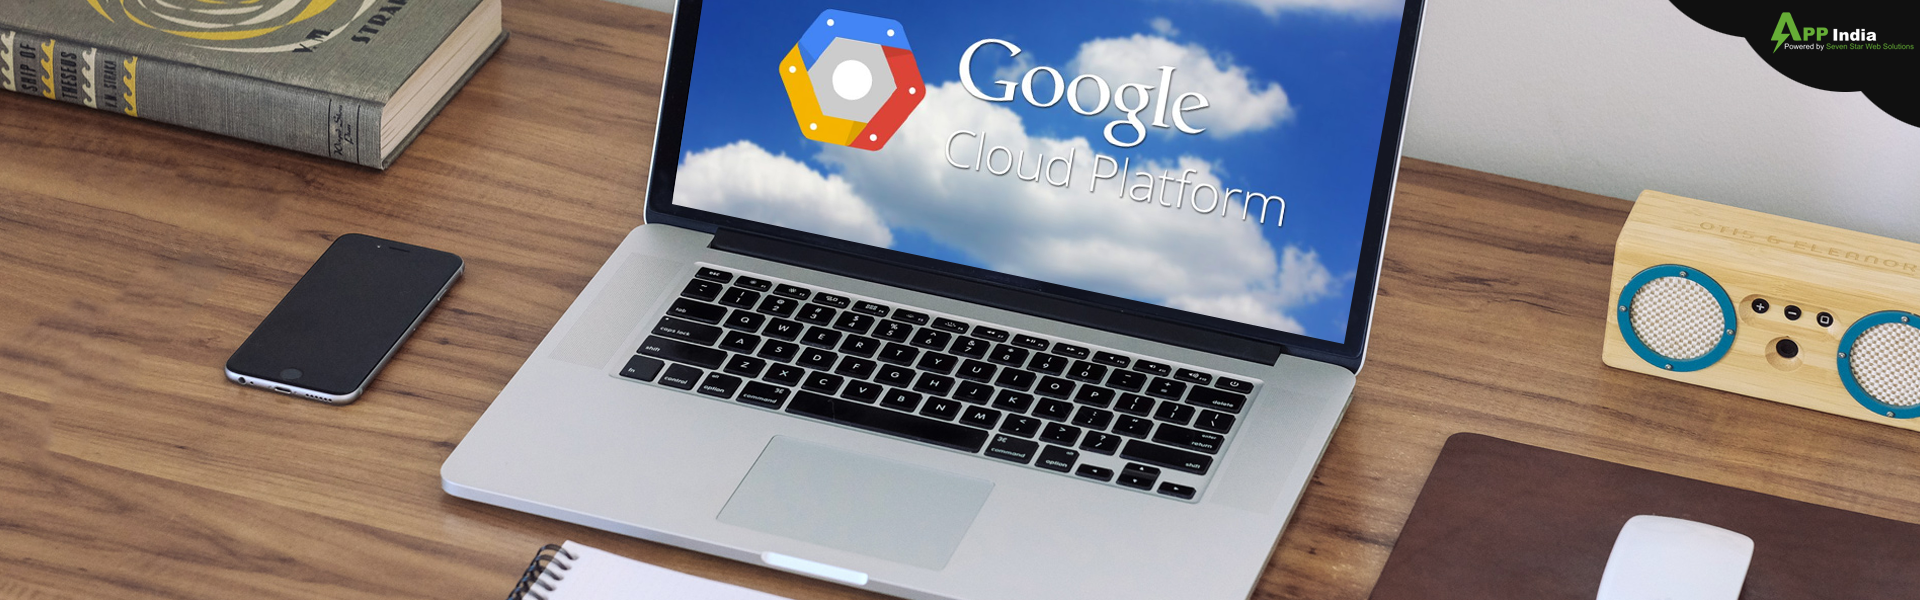 Google Cloud Services Provider